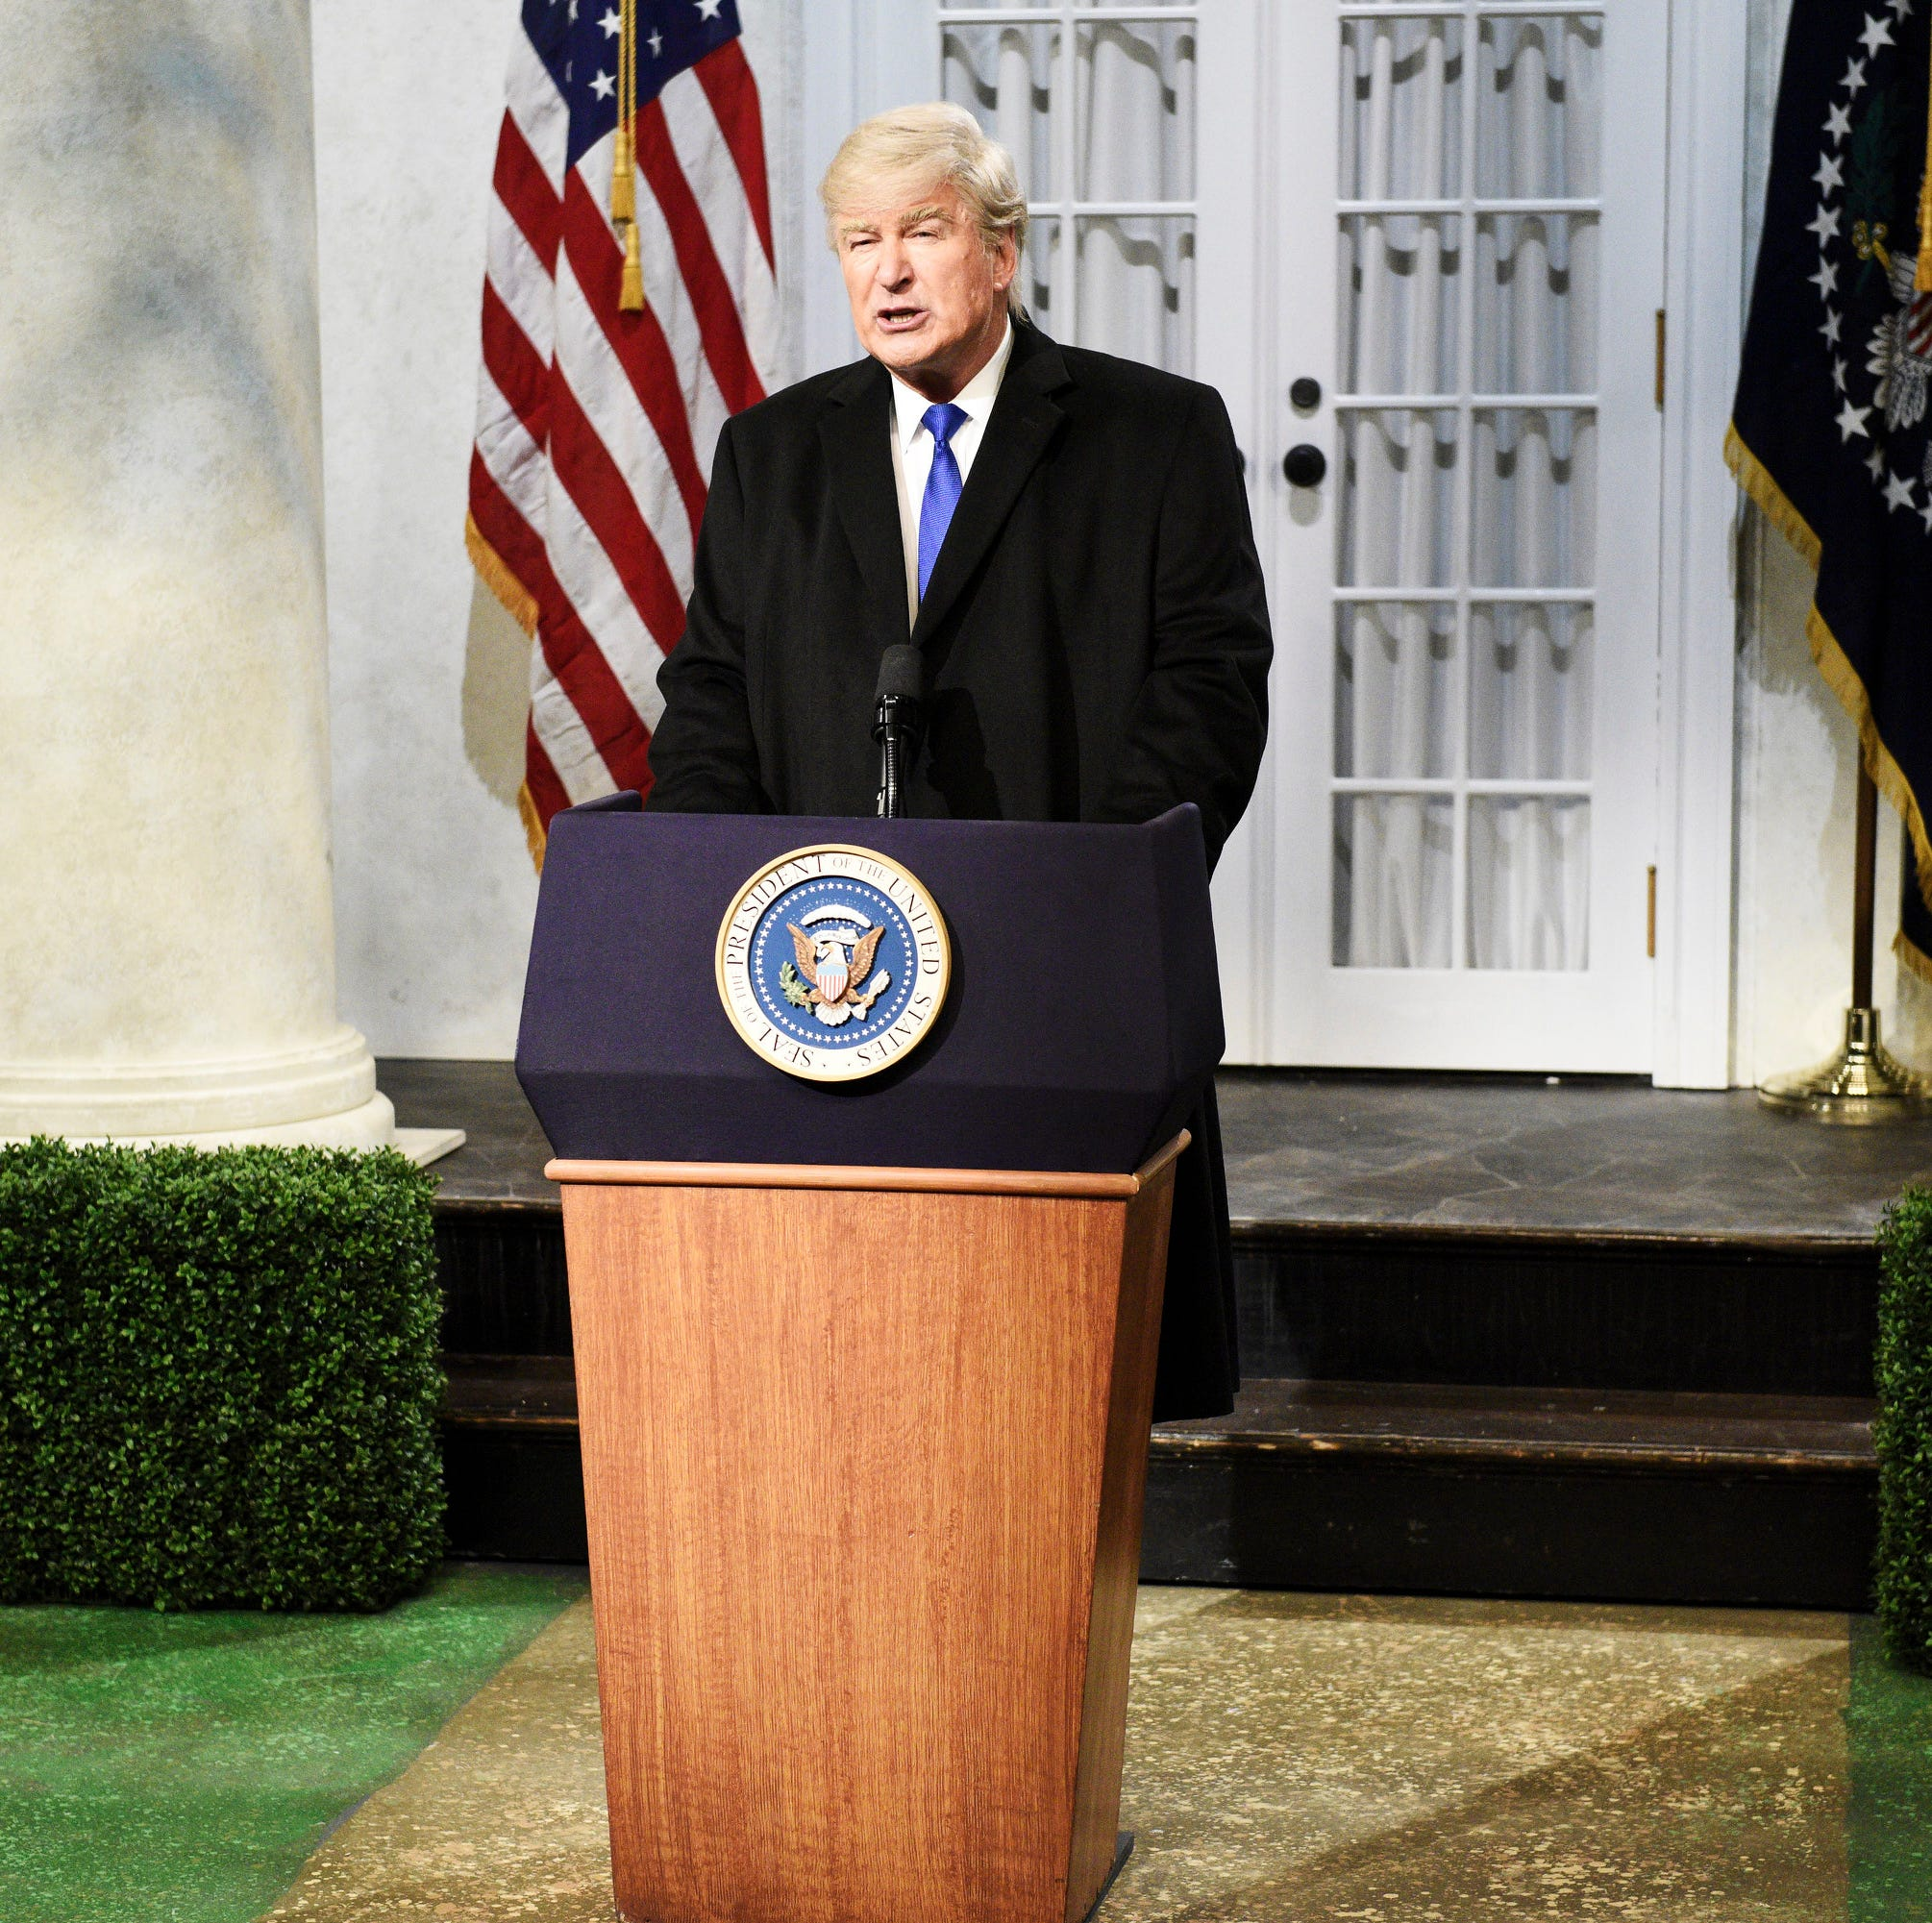 """""""You all see why I have to fake this national emergency, right?"""" Alec Baldwin said at the top of """"Saturday Night Live"""" on Feb. 16, mocking President Trump's Rose Garden speech announcing his latest gambit to get his border wall. """"I have to because I want to."""" The skit irked the real occupant of 1600 Pennsylvania Avenue, who tweeted, """"THE RIGGED AND CORRUPT MEDIA IS THE ENEMY OF THE PEOPLE!"""""""